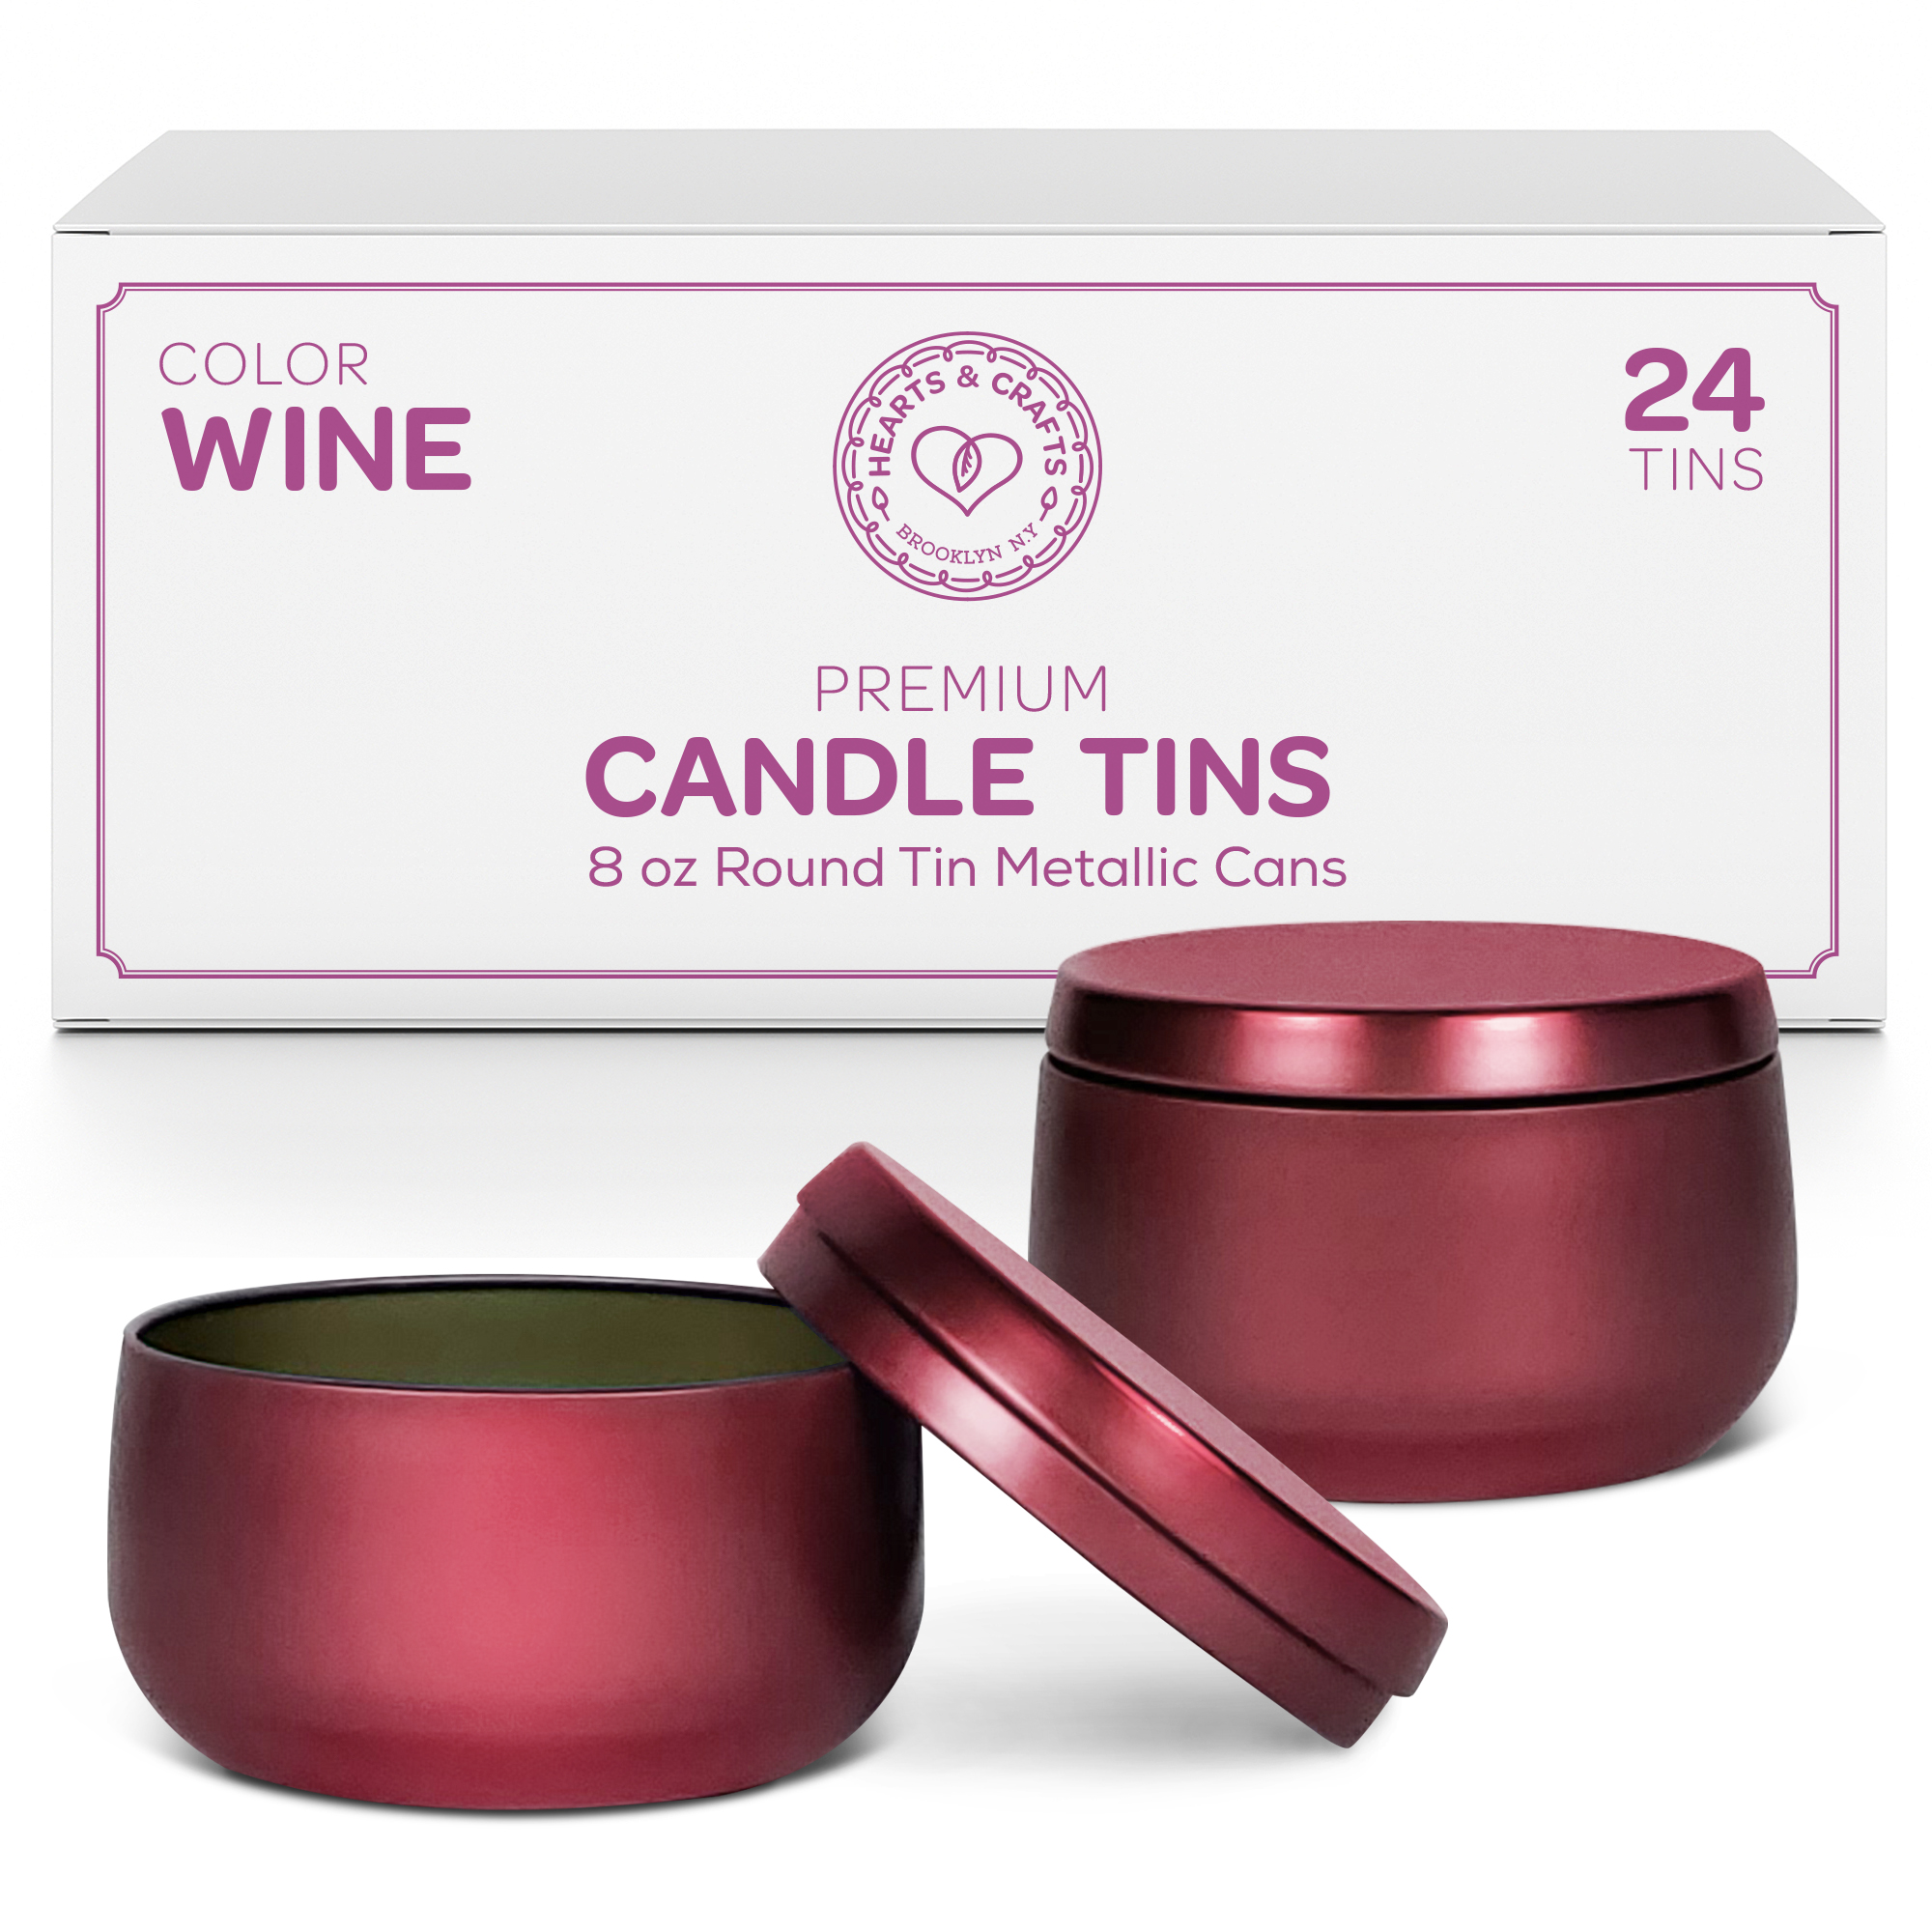 8oz Wine Candle Tins – 24 Count